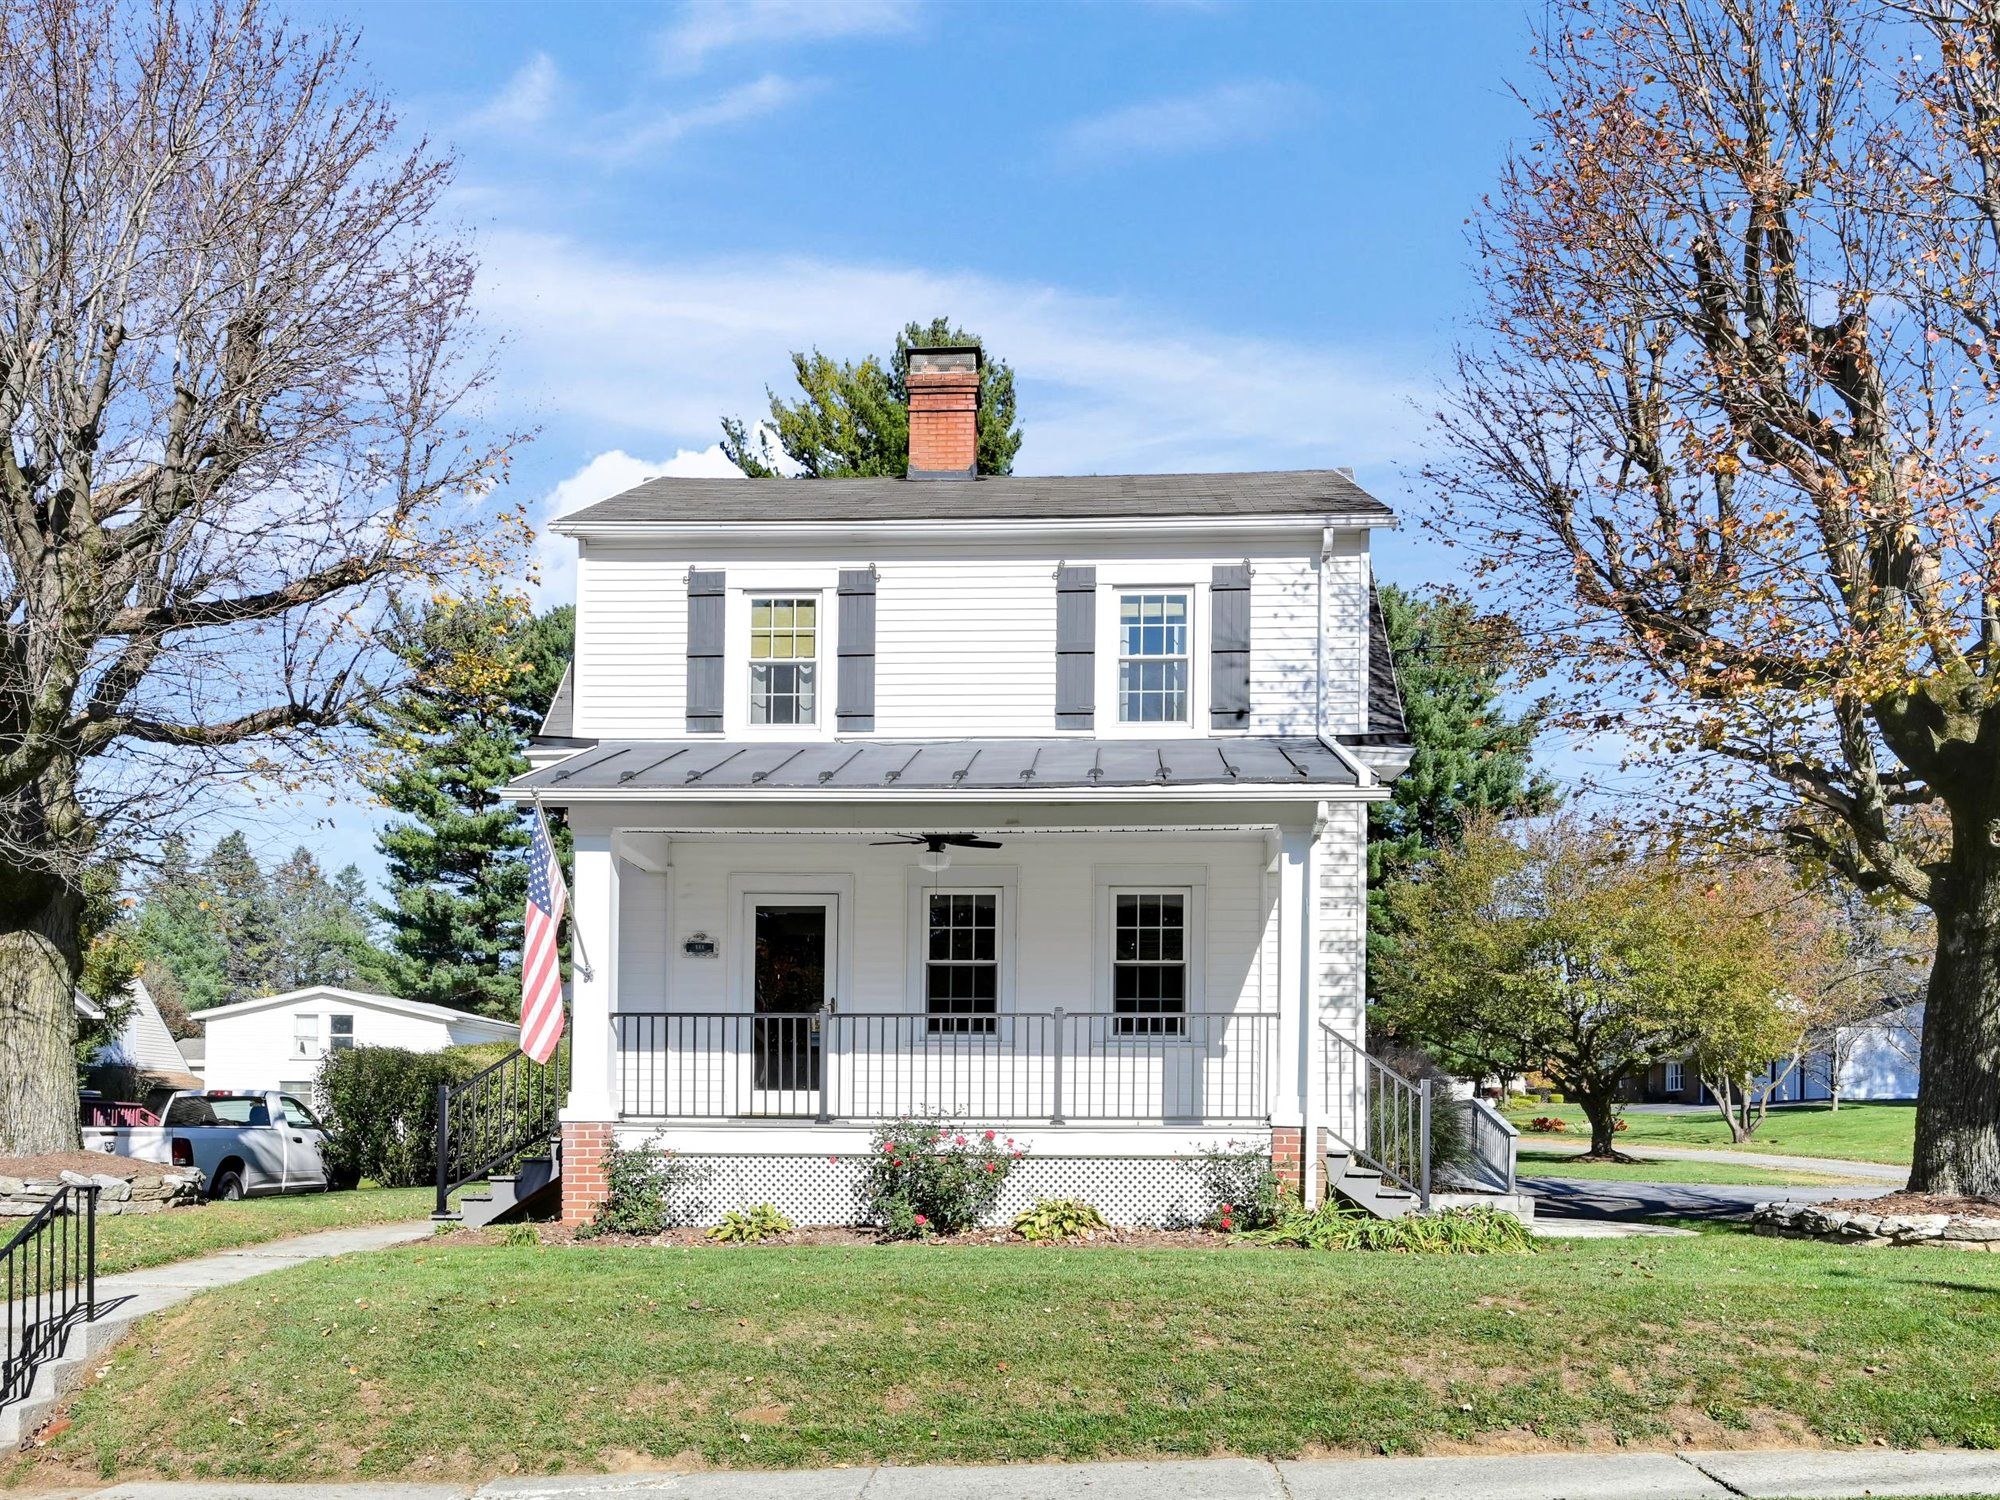 Welcome to this Cornwall Charmer at 111 Pine Street, Lebanon PA